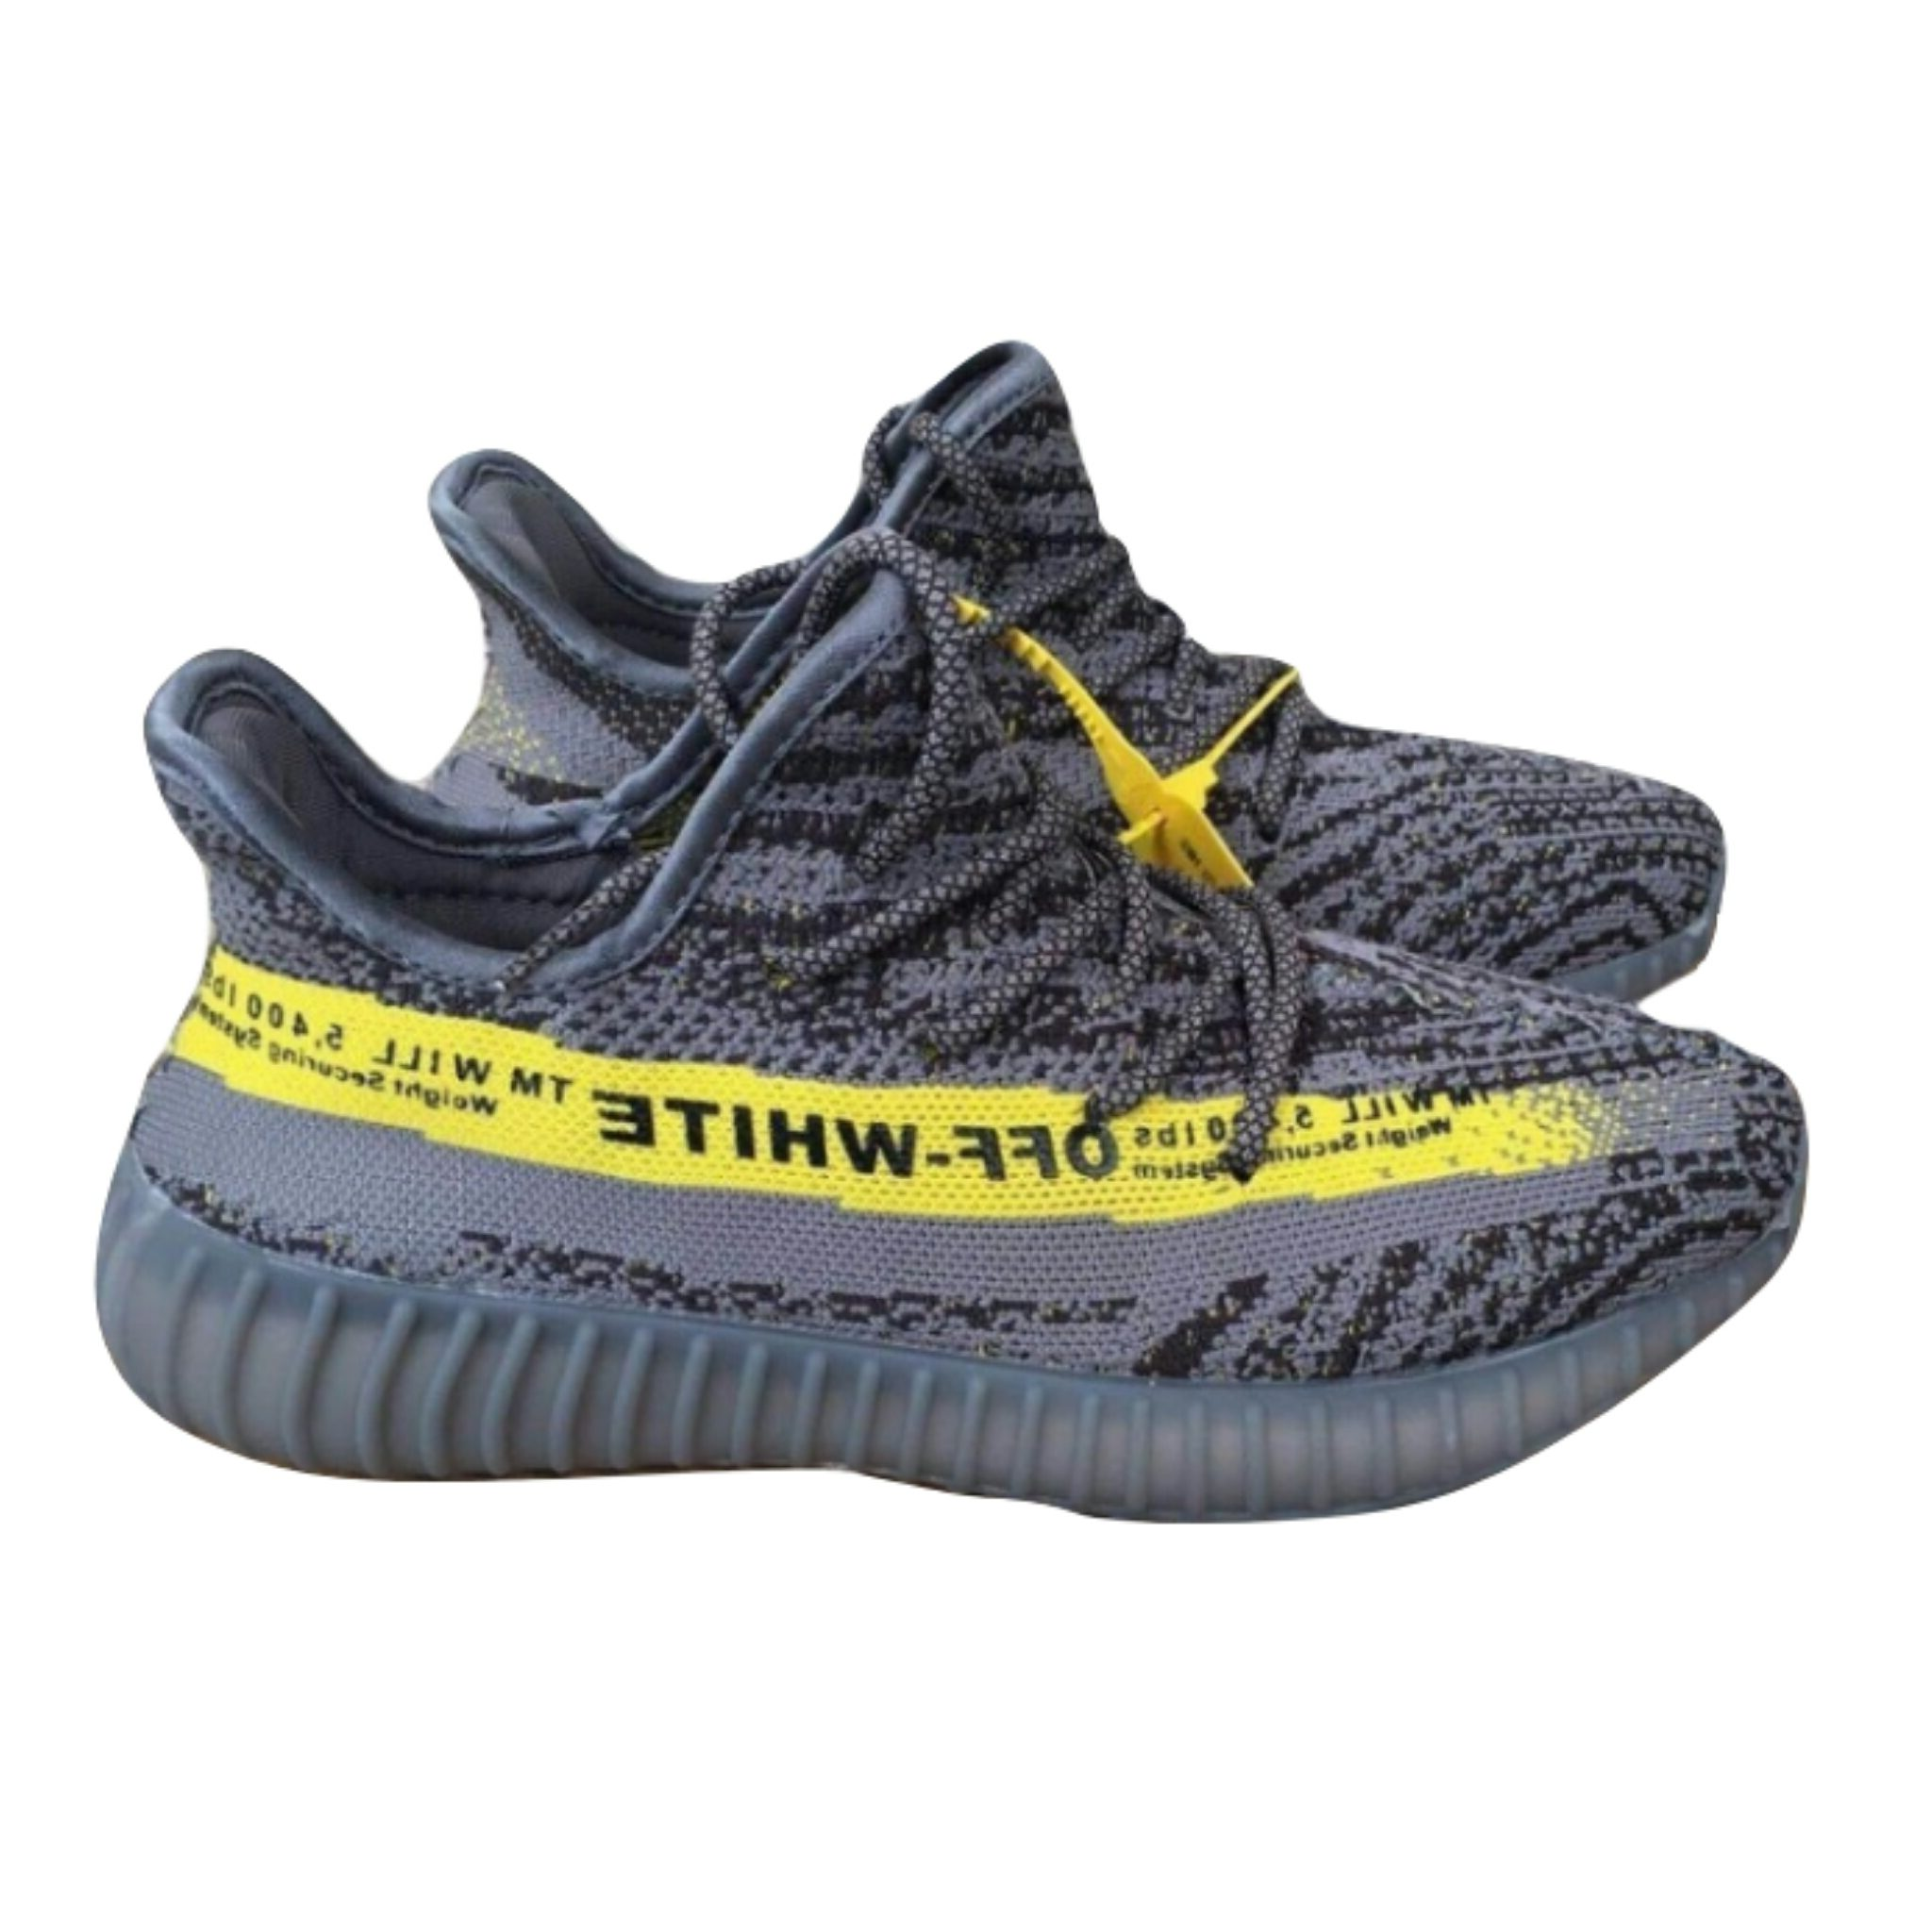 """e7e1986024ea7 Adidas Yeezy Boost 350 """"OFF-WHITE"""" - Buy Shoes Online In Pakistan"""